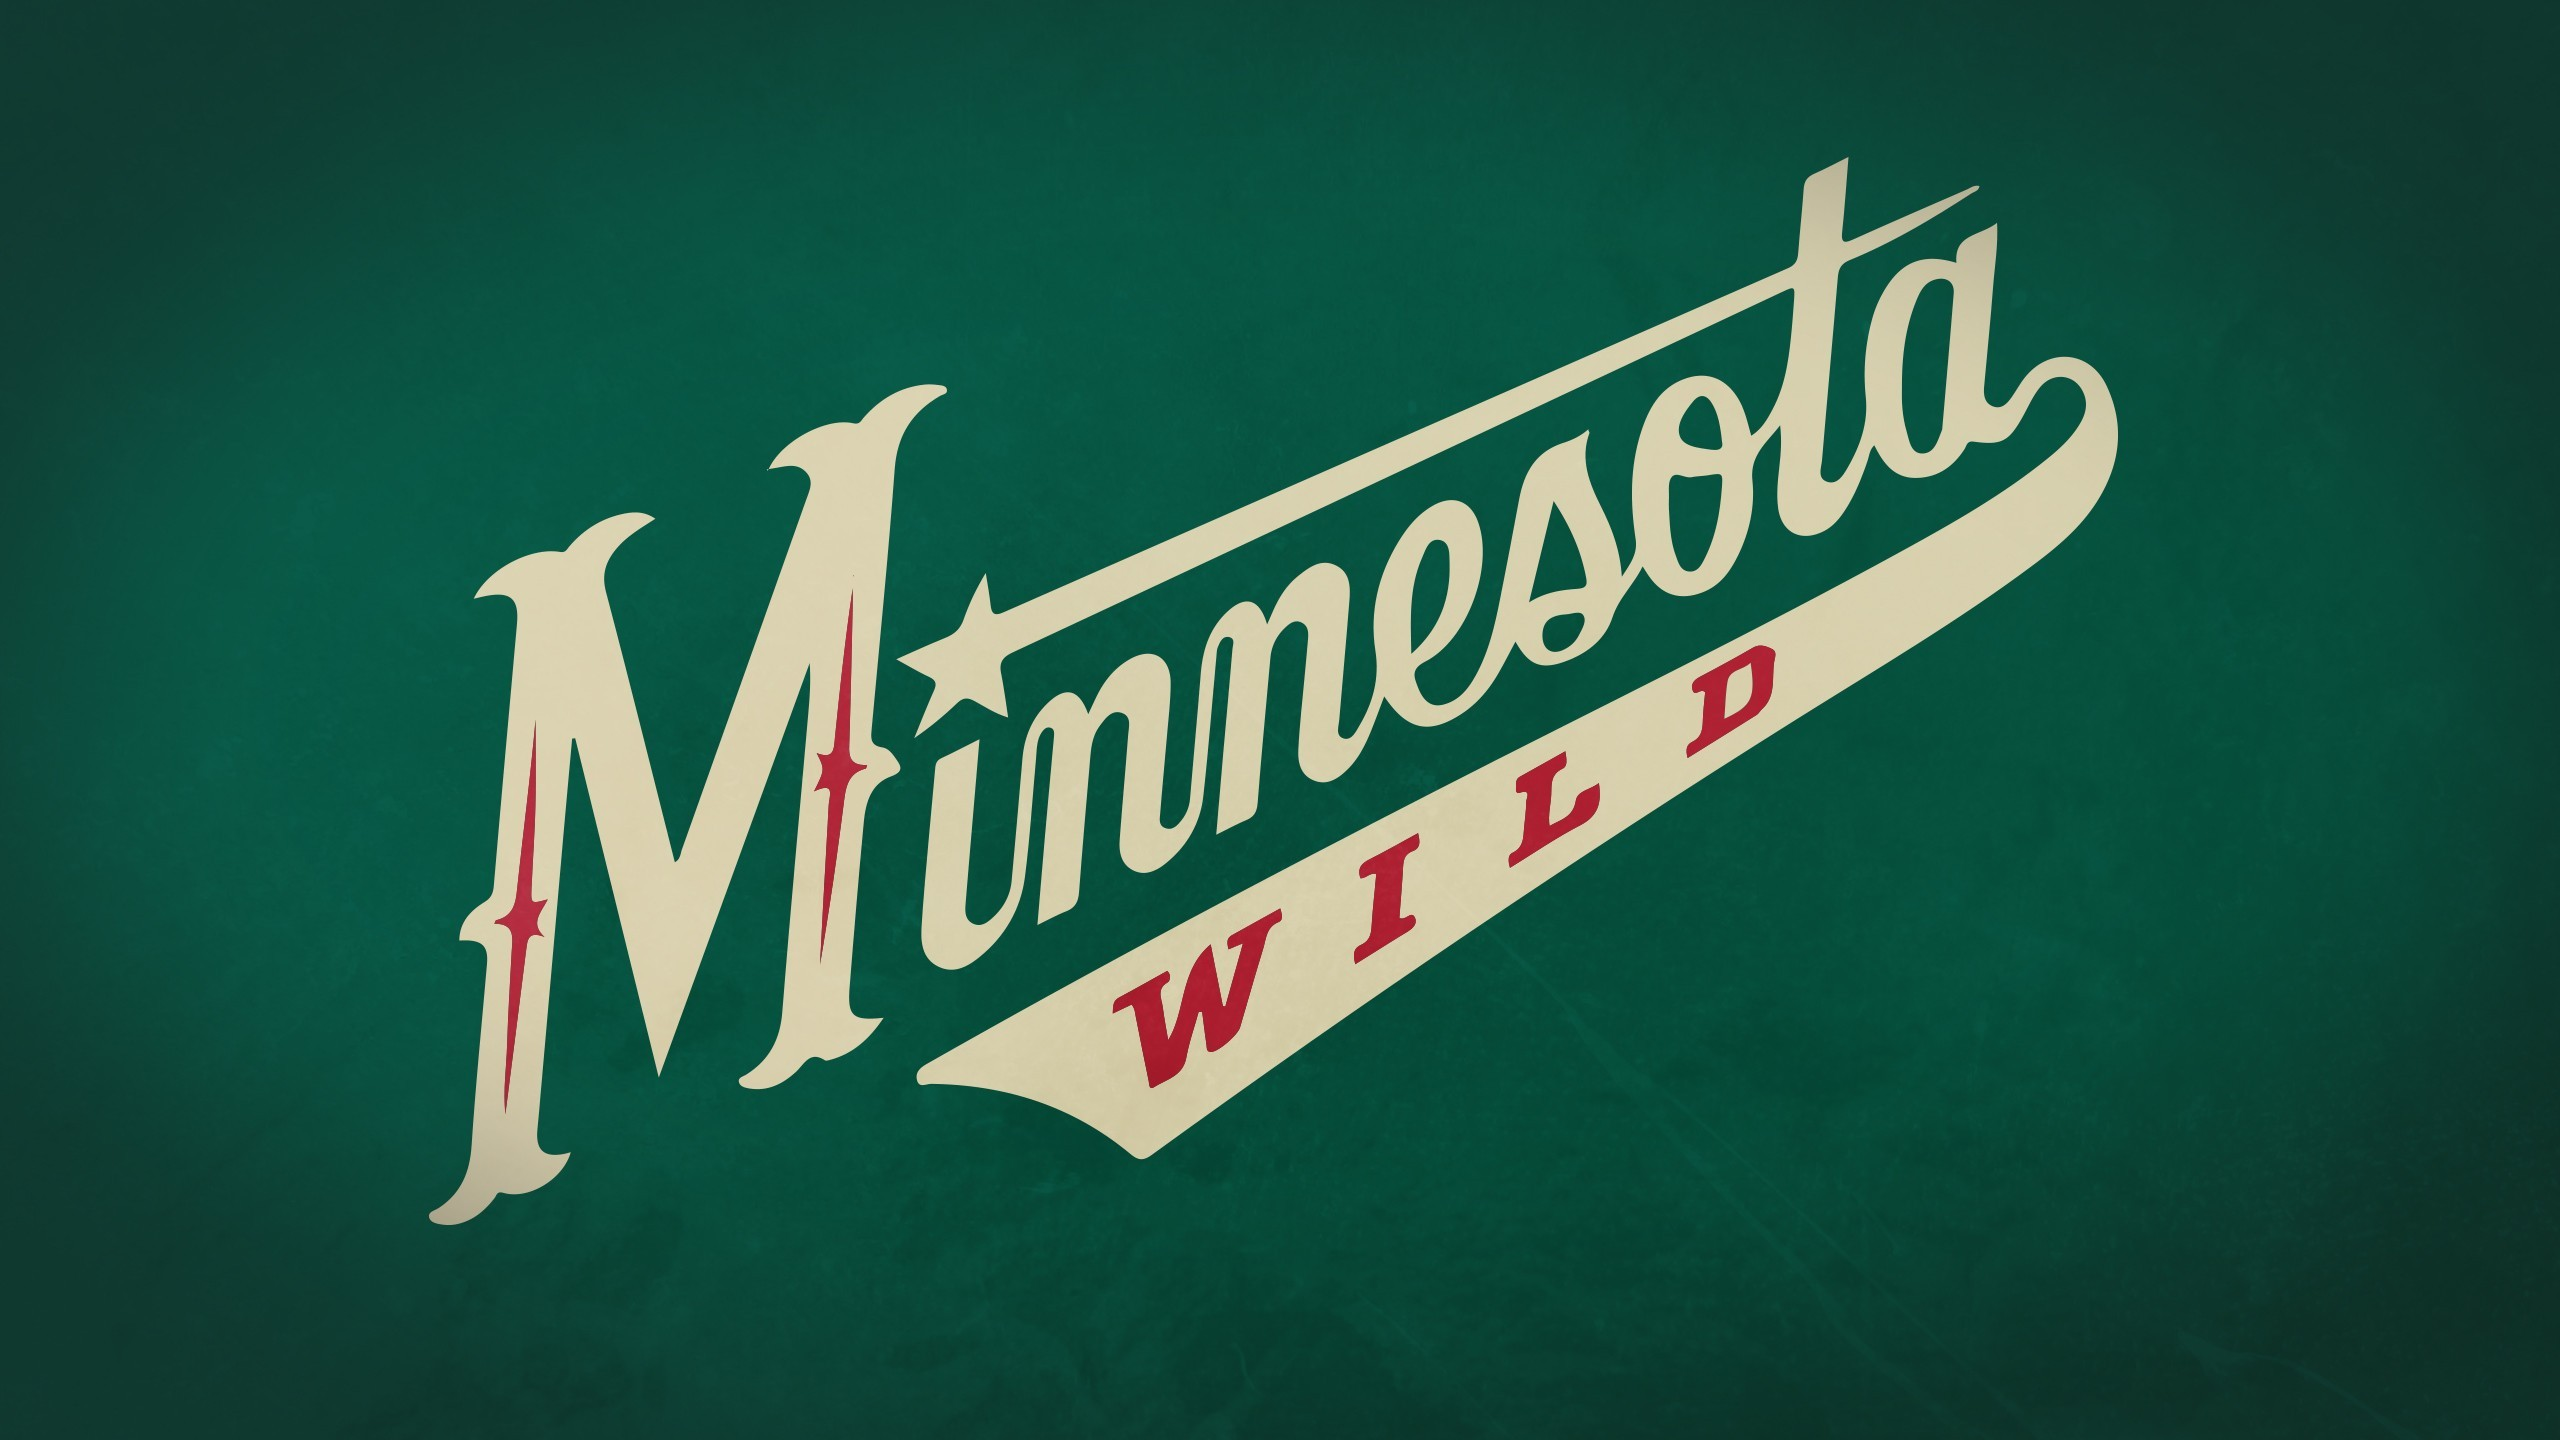 2560x1440 Sports Minnesota Wild Wallpaper #359420 - Resolution  px